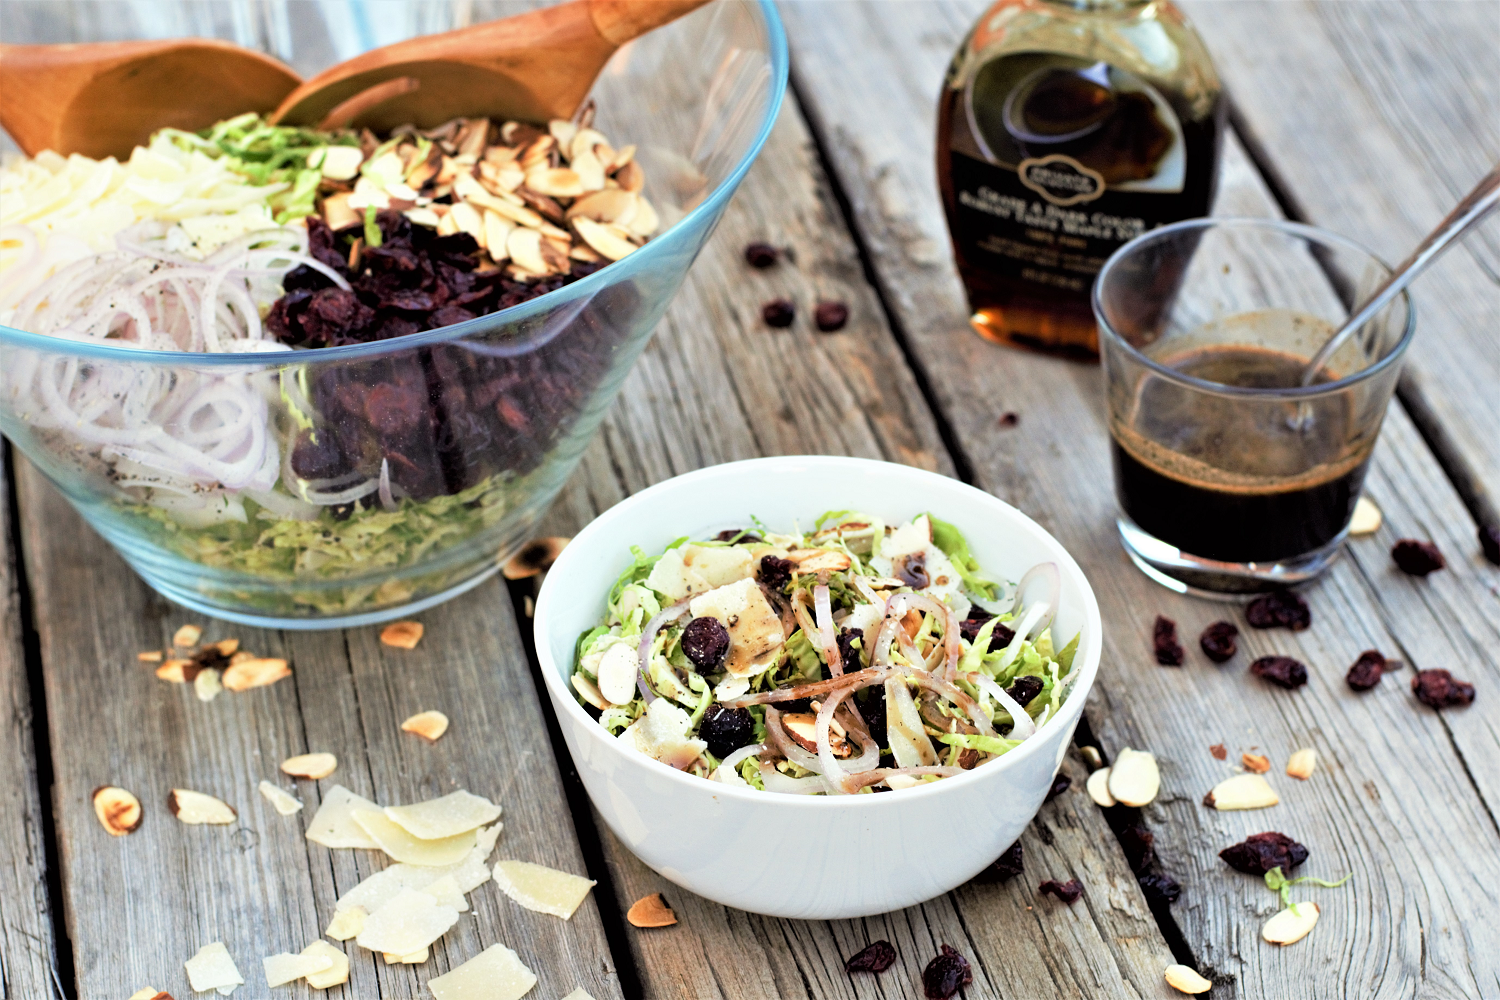 Brussels sprout salad with a little bit of everything: sweet cranberries, salty shaved parmesan, crunchy toasted almonds, & maple-balsamic vinaigrette.